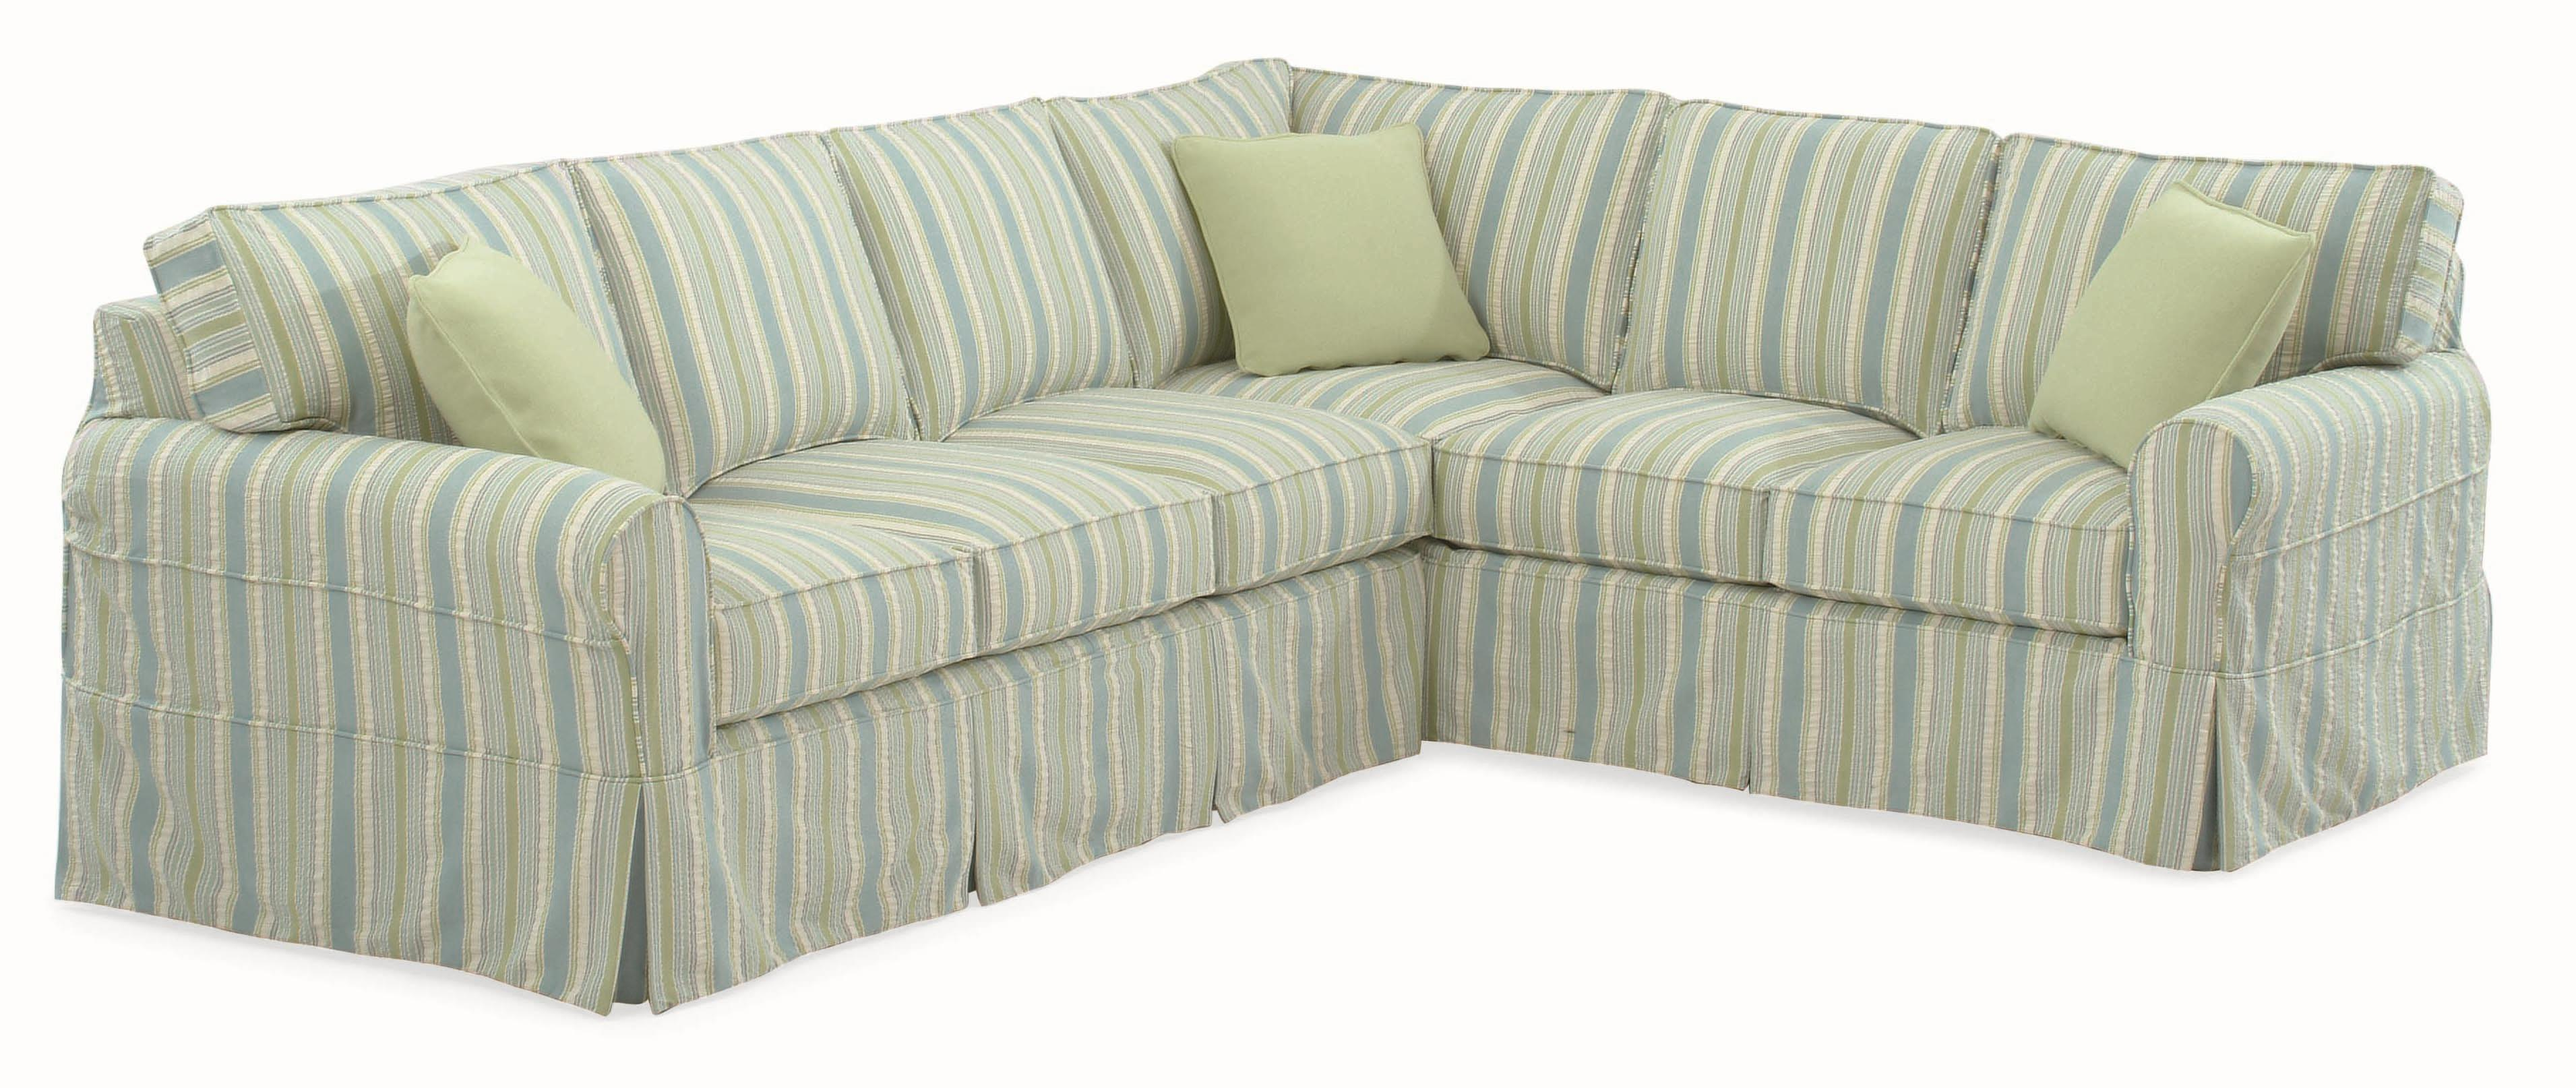 Sectional Sofa with Slipcover